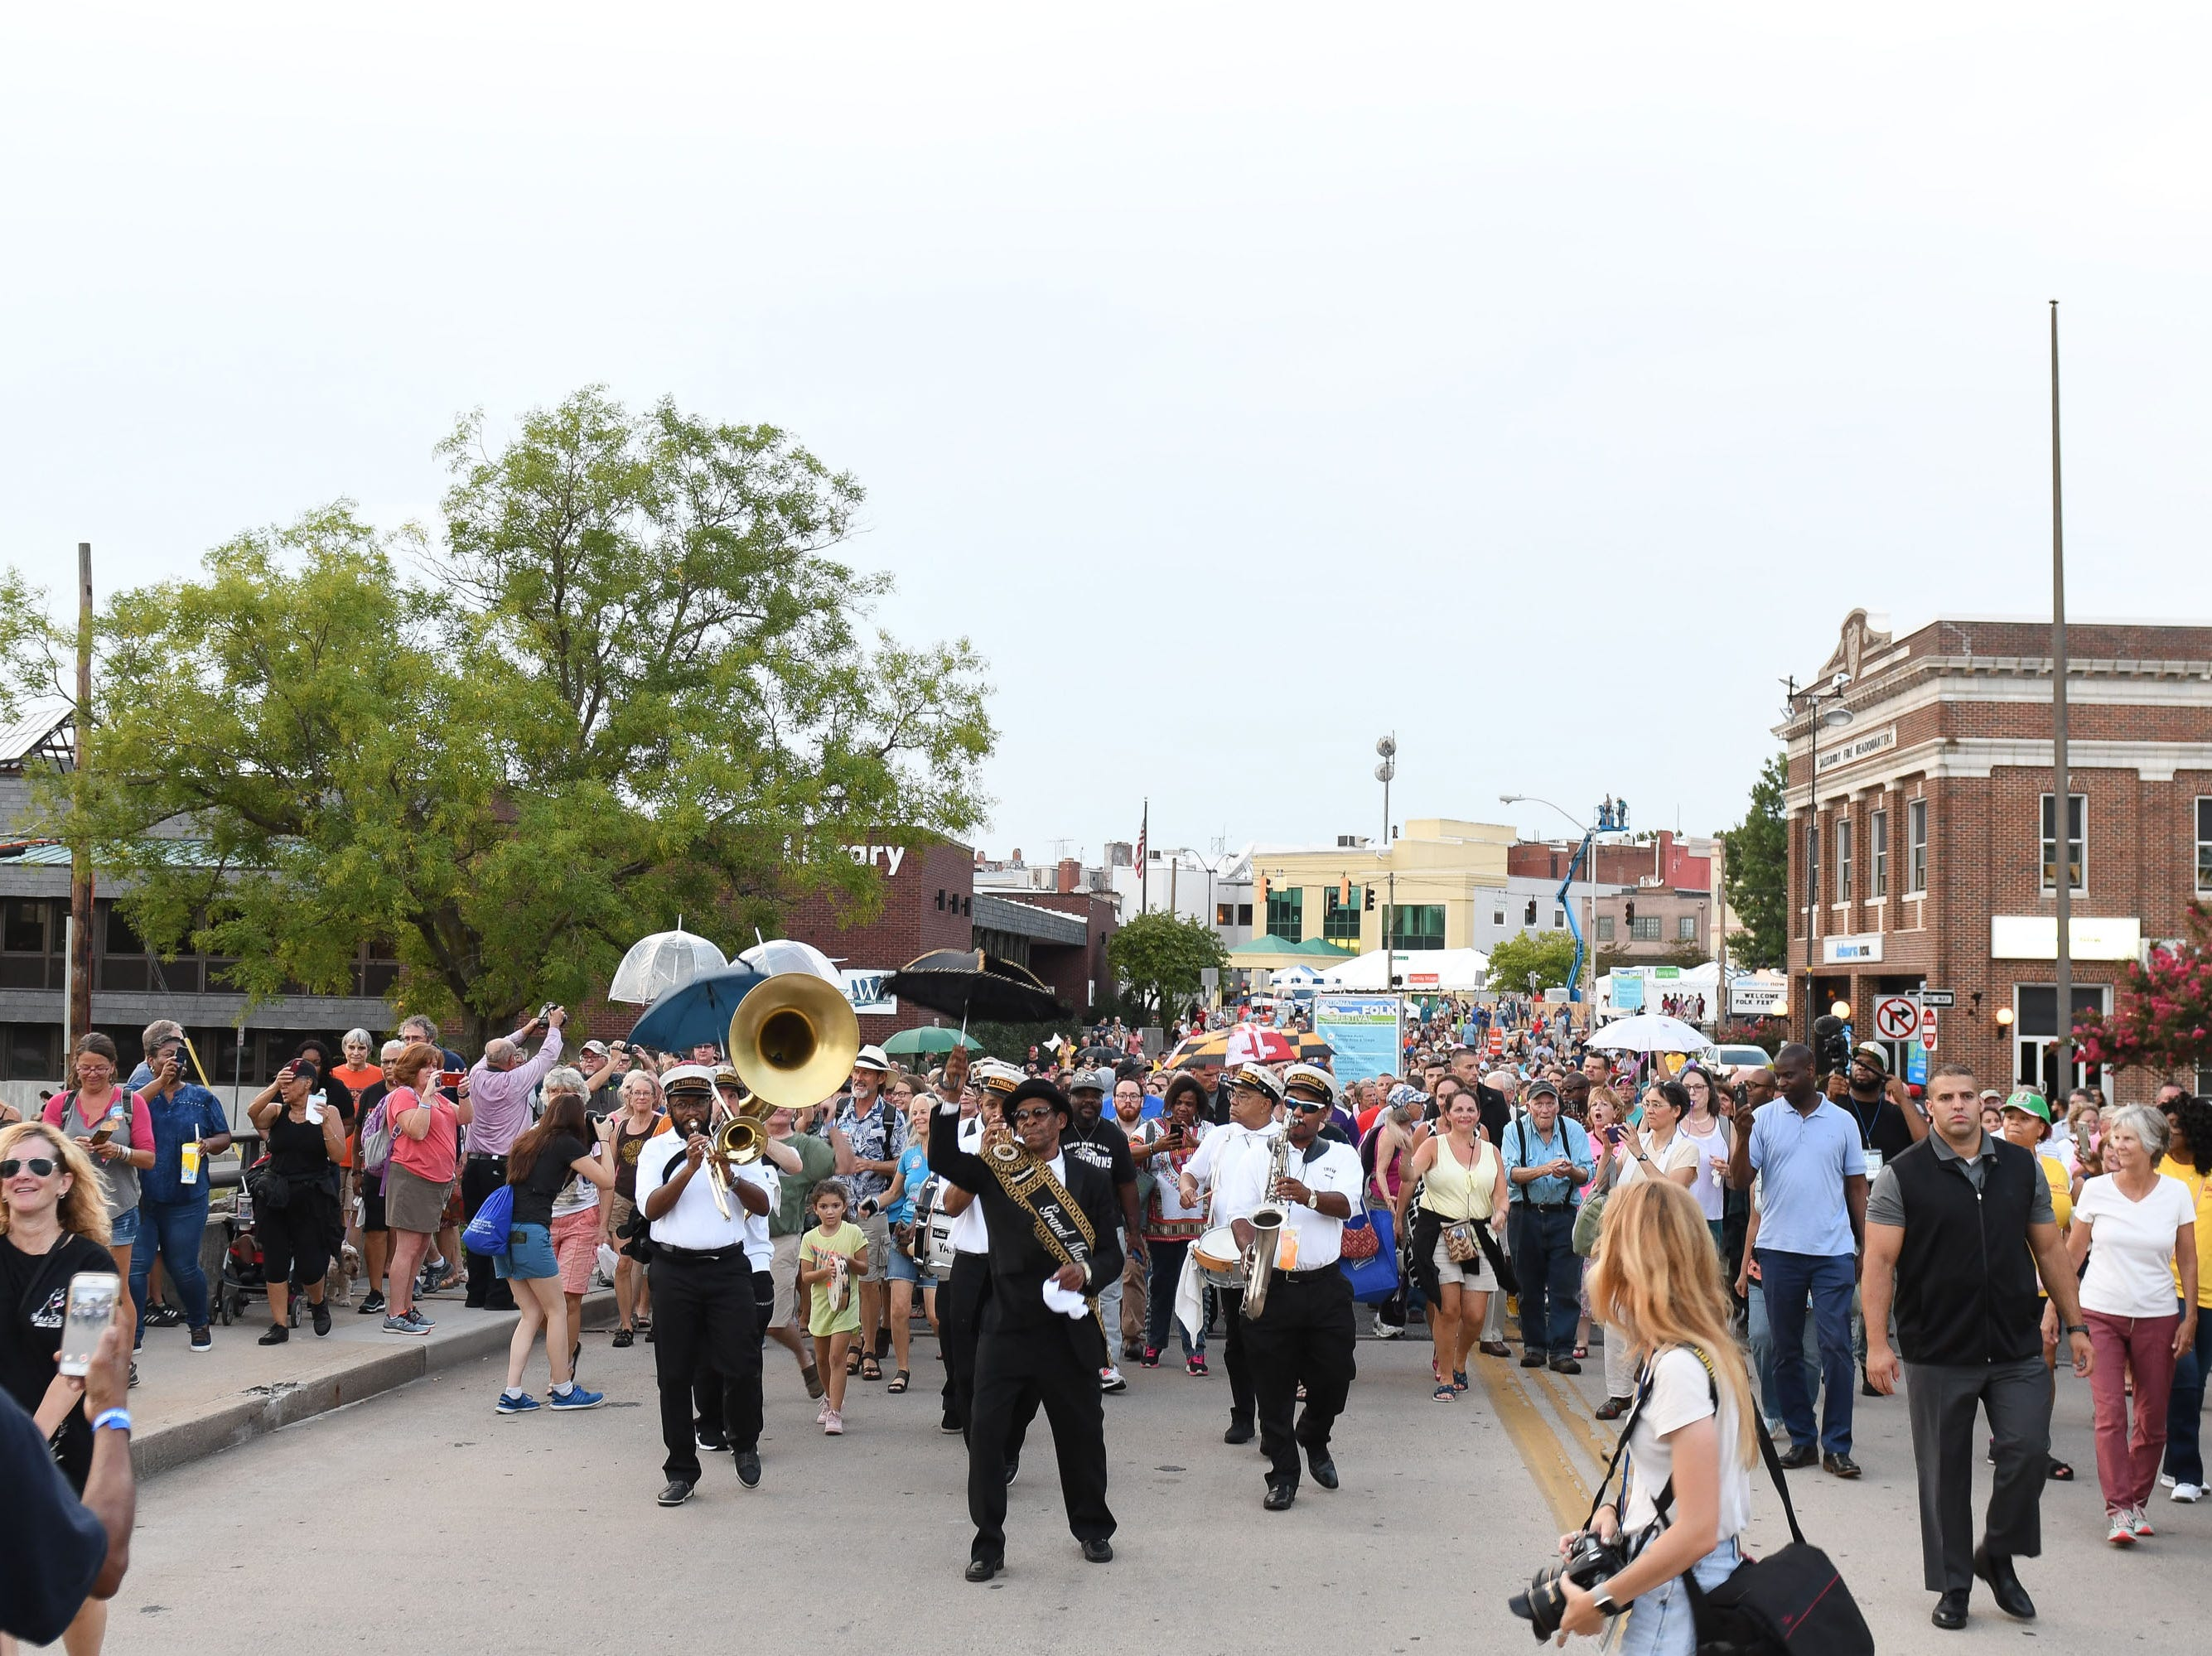 The Treme Brass Band paraded down South Division Street during the 78th National Folk Festival in Salisbury, Md. on Friday, Sept 7, 2018.